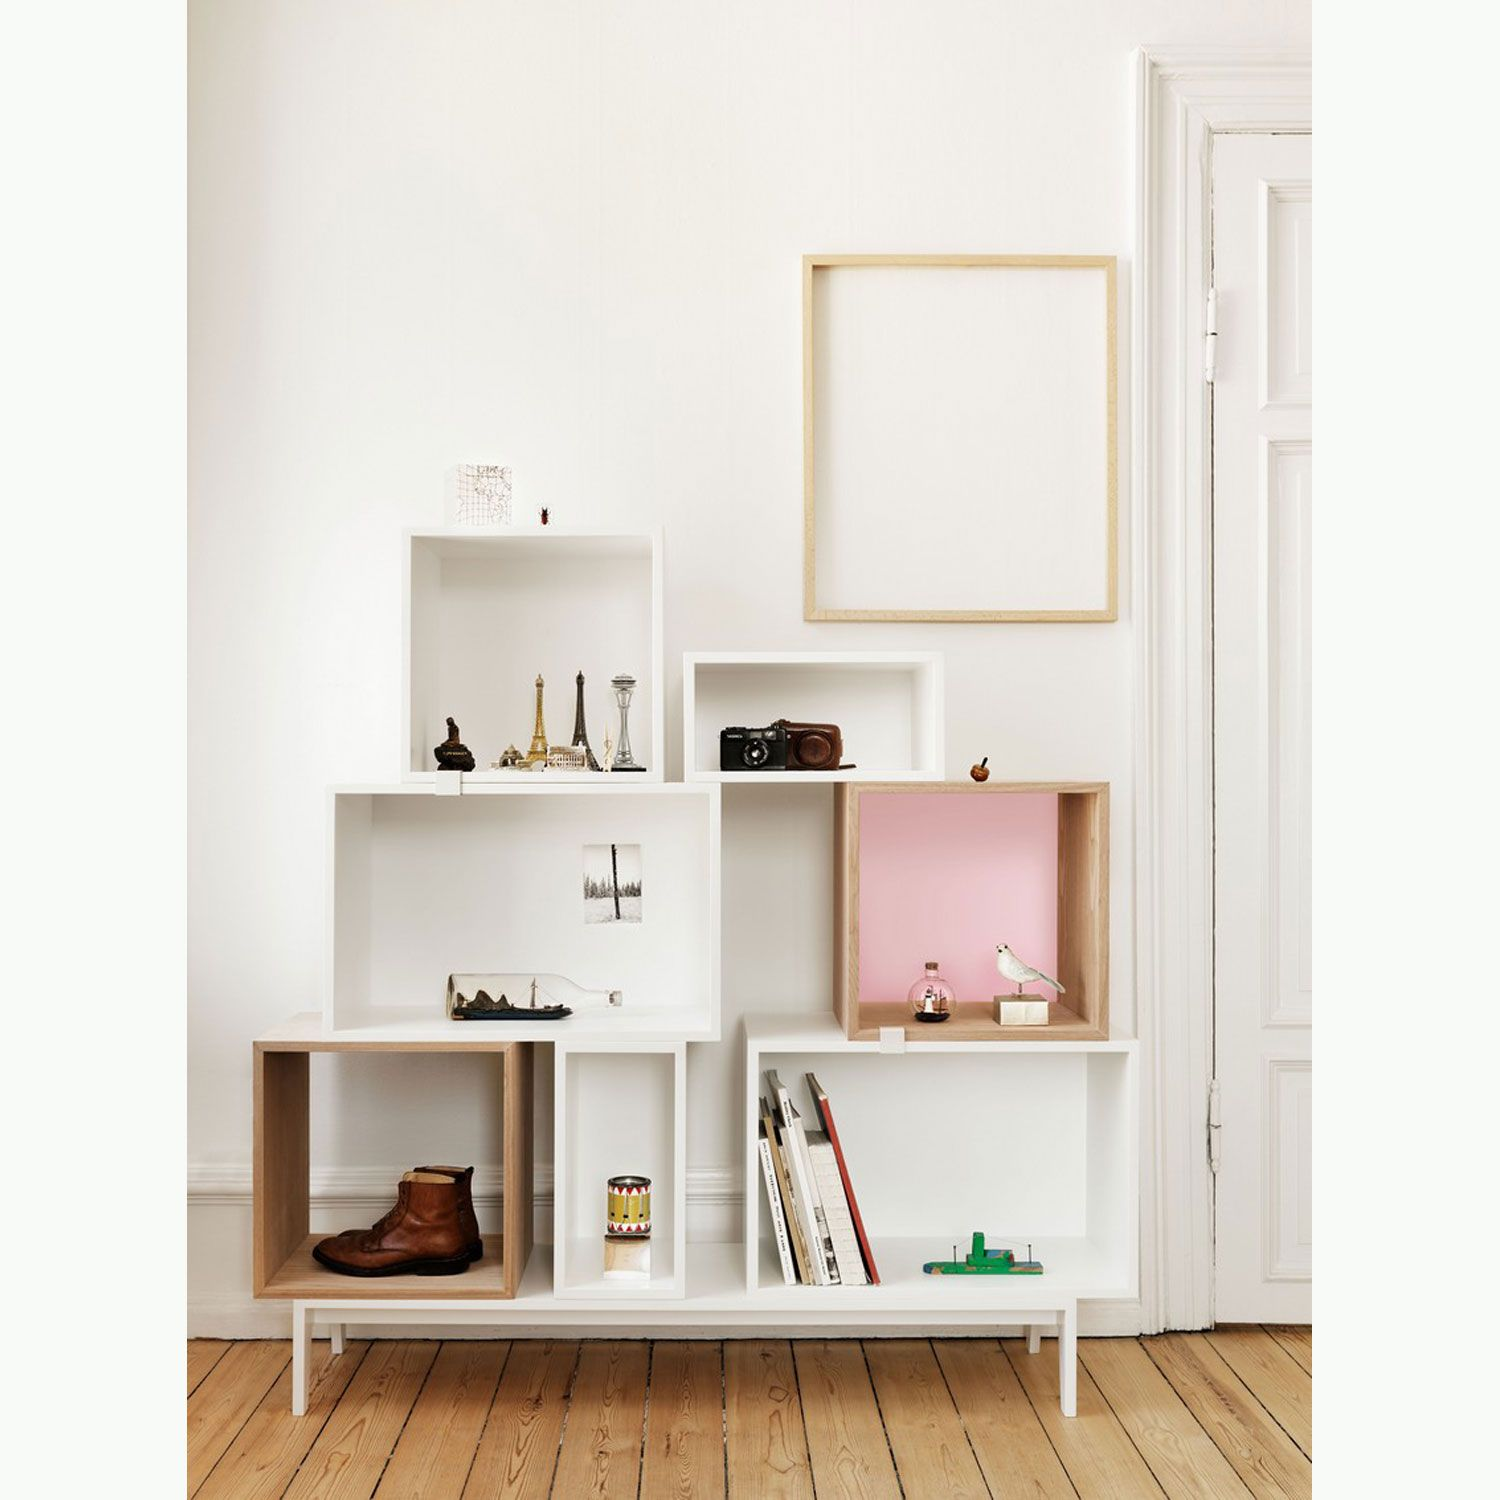 Jds Architects Stacked Shelf System At Muuto (Photographed By Petra